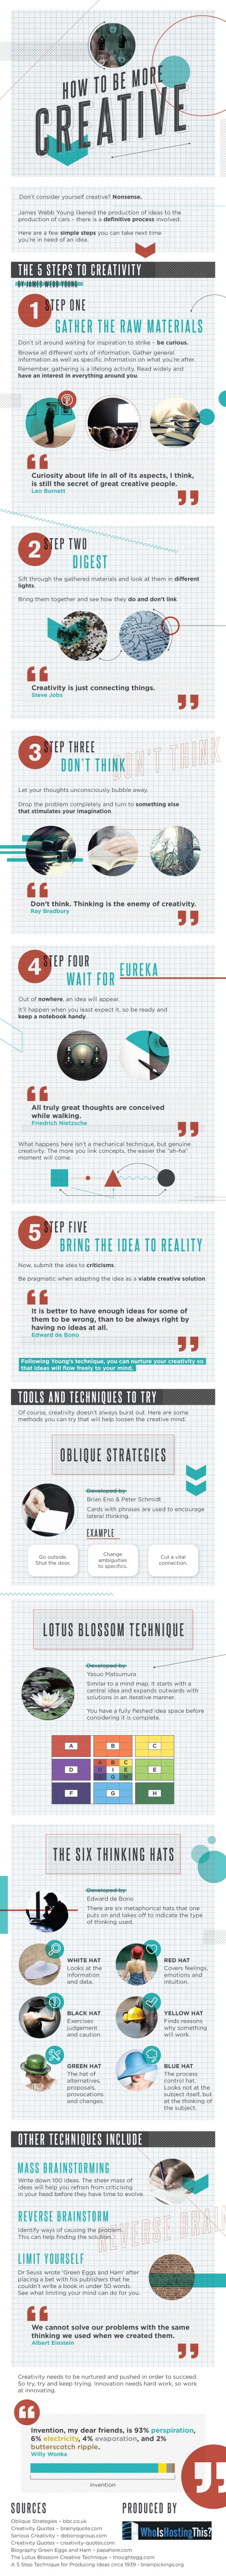 Infographic: How To Be More Creative